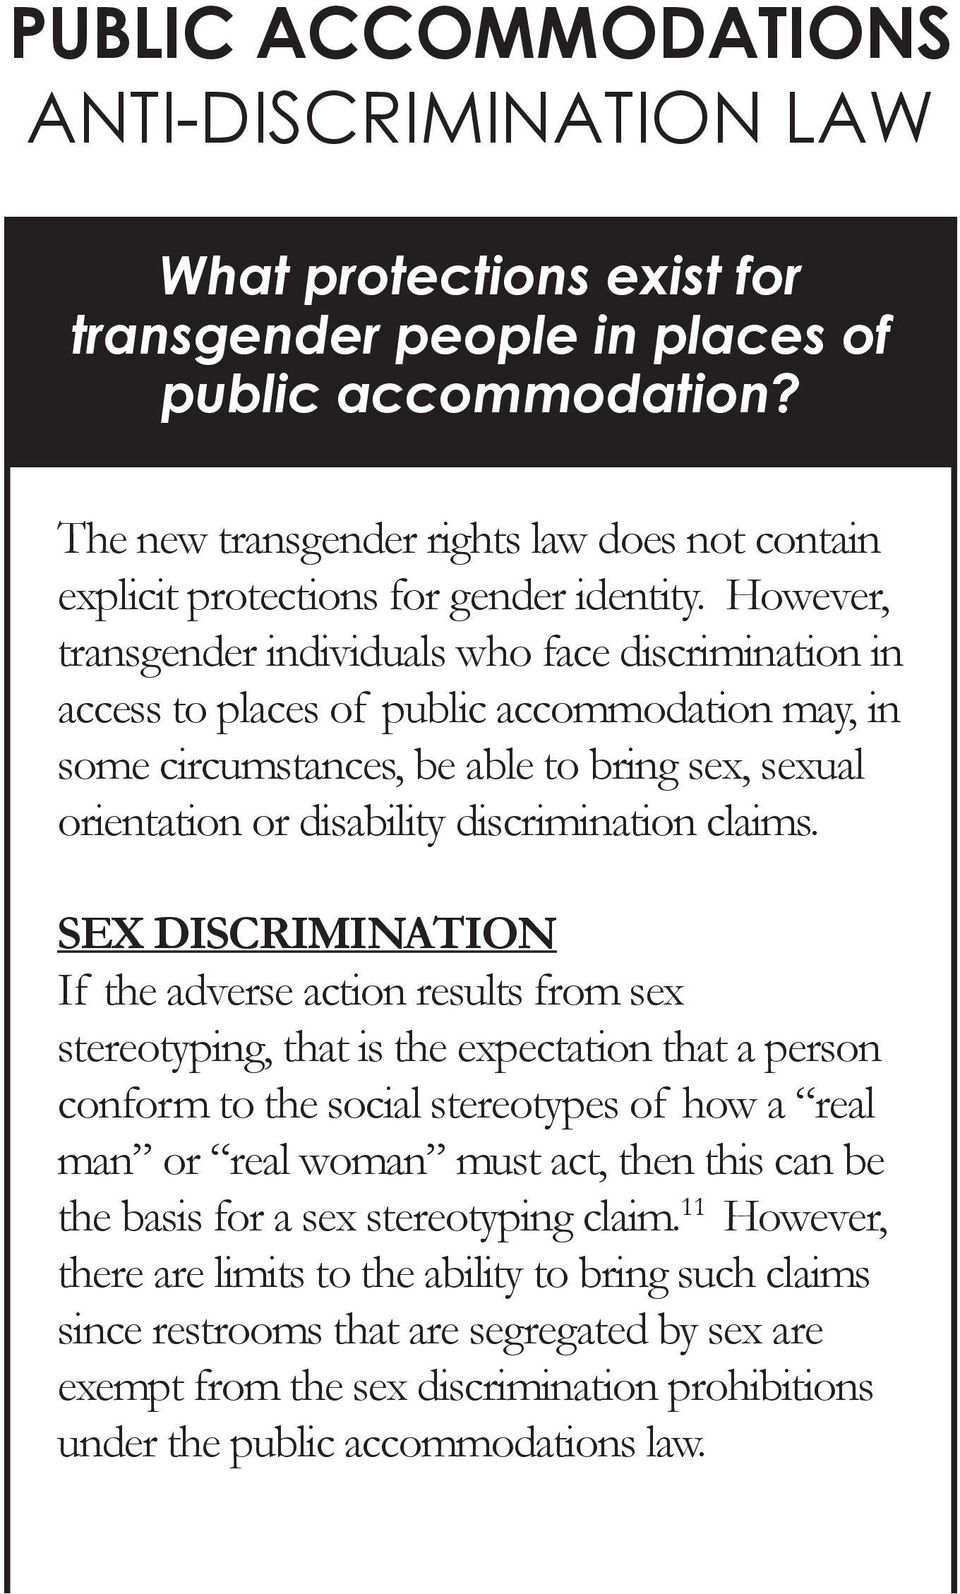 However, transgender individuals who face discrimination in access to places of public accommodation may, in some circumstances, be able to bring sex, sexual orientation or disability discrimination